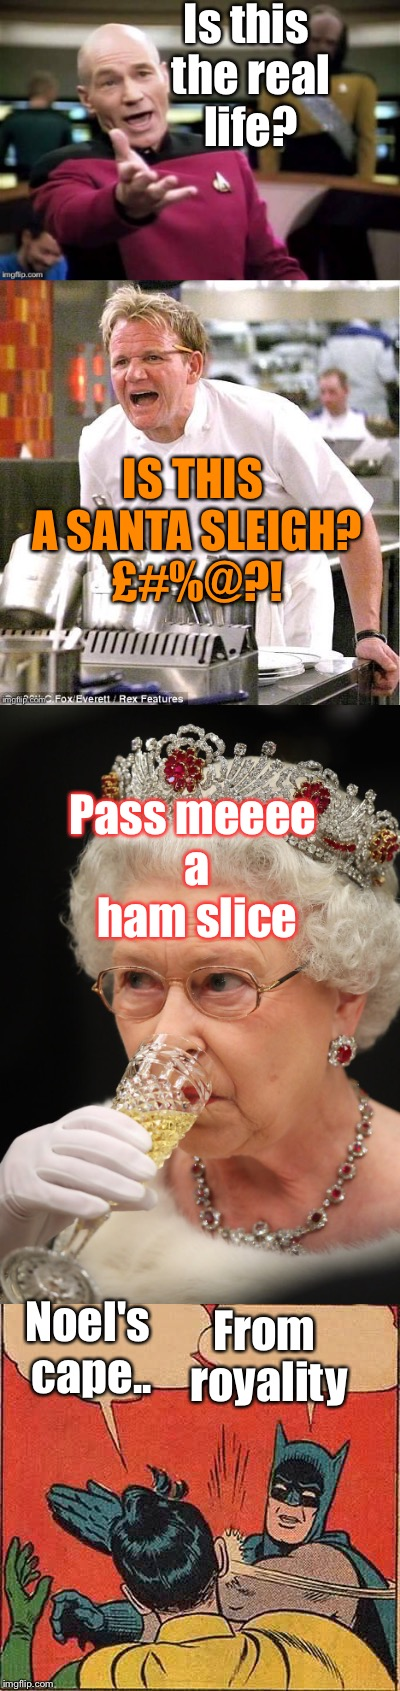 Dumbmemeian Rhapsody/ queens speech/ is dumb meme week reallyoverreallyitsjohn? | Is this the real life? IS THIS A SANTA SLEIGH? £#%@?! Pass meeee a ham slice Noel's cape.. From royality | image tagged in queen,bohemian rhapsody,christmas songs,wrong lyrics | made w/ Imgflip meme maker